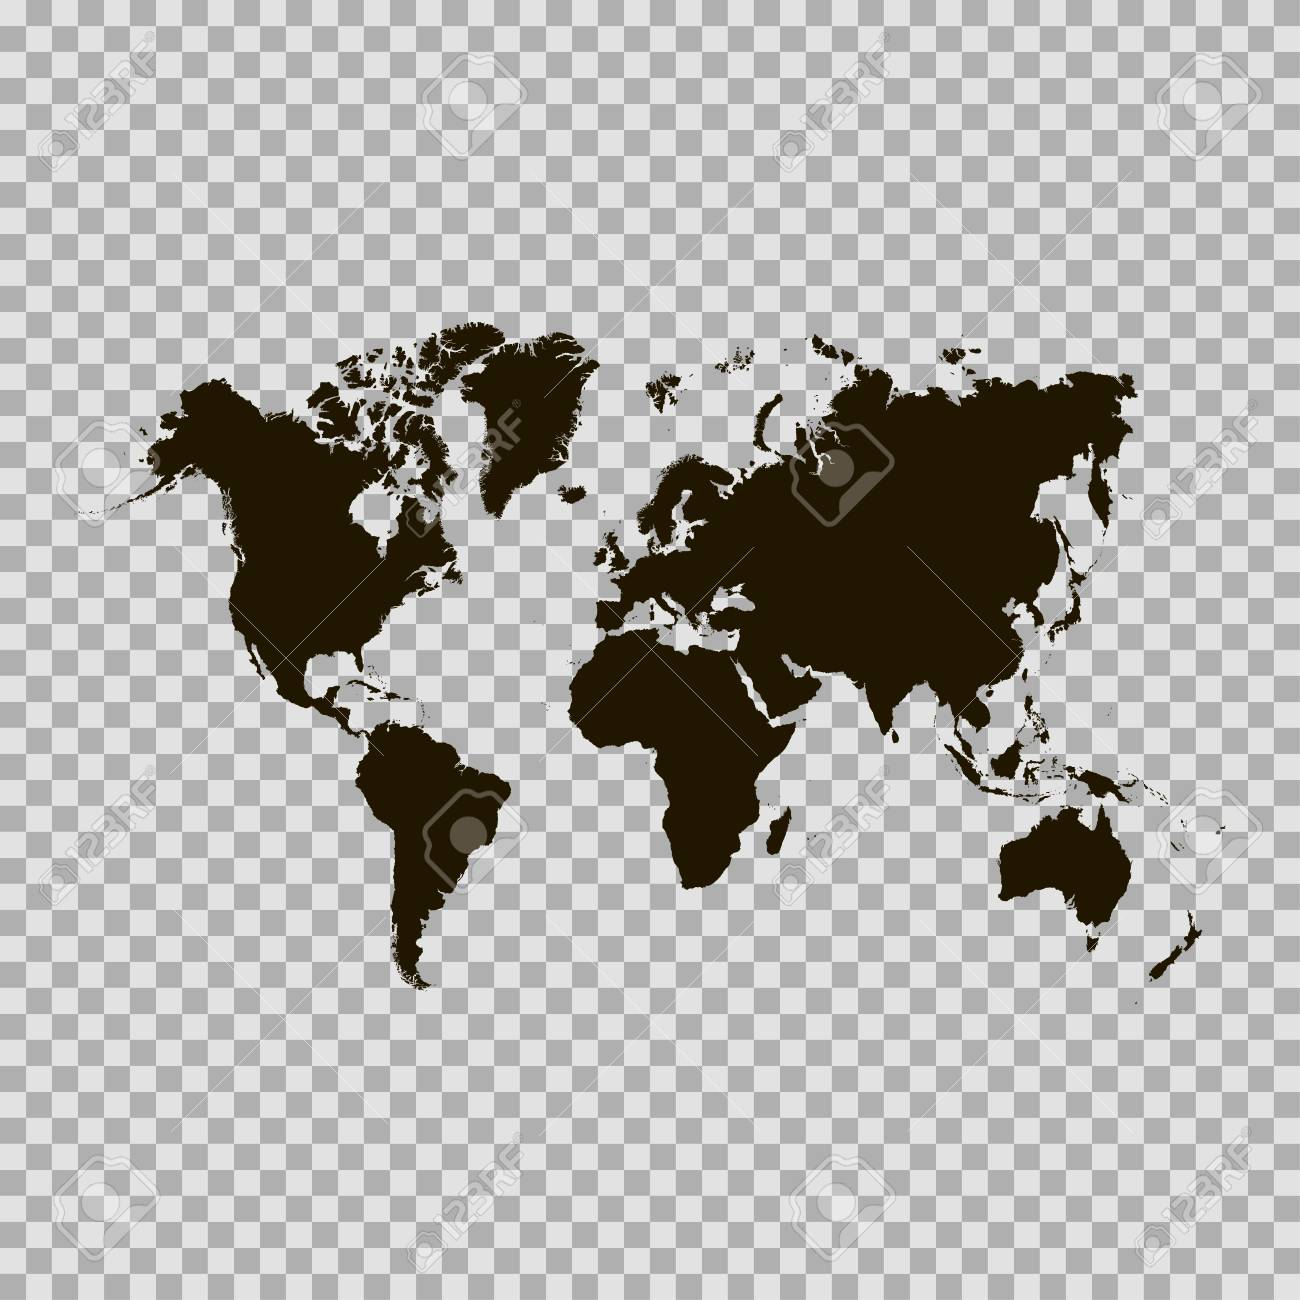 Black Similar World Map. World Map Blank. World Map Vector. World Map Flat